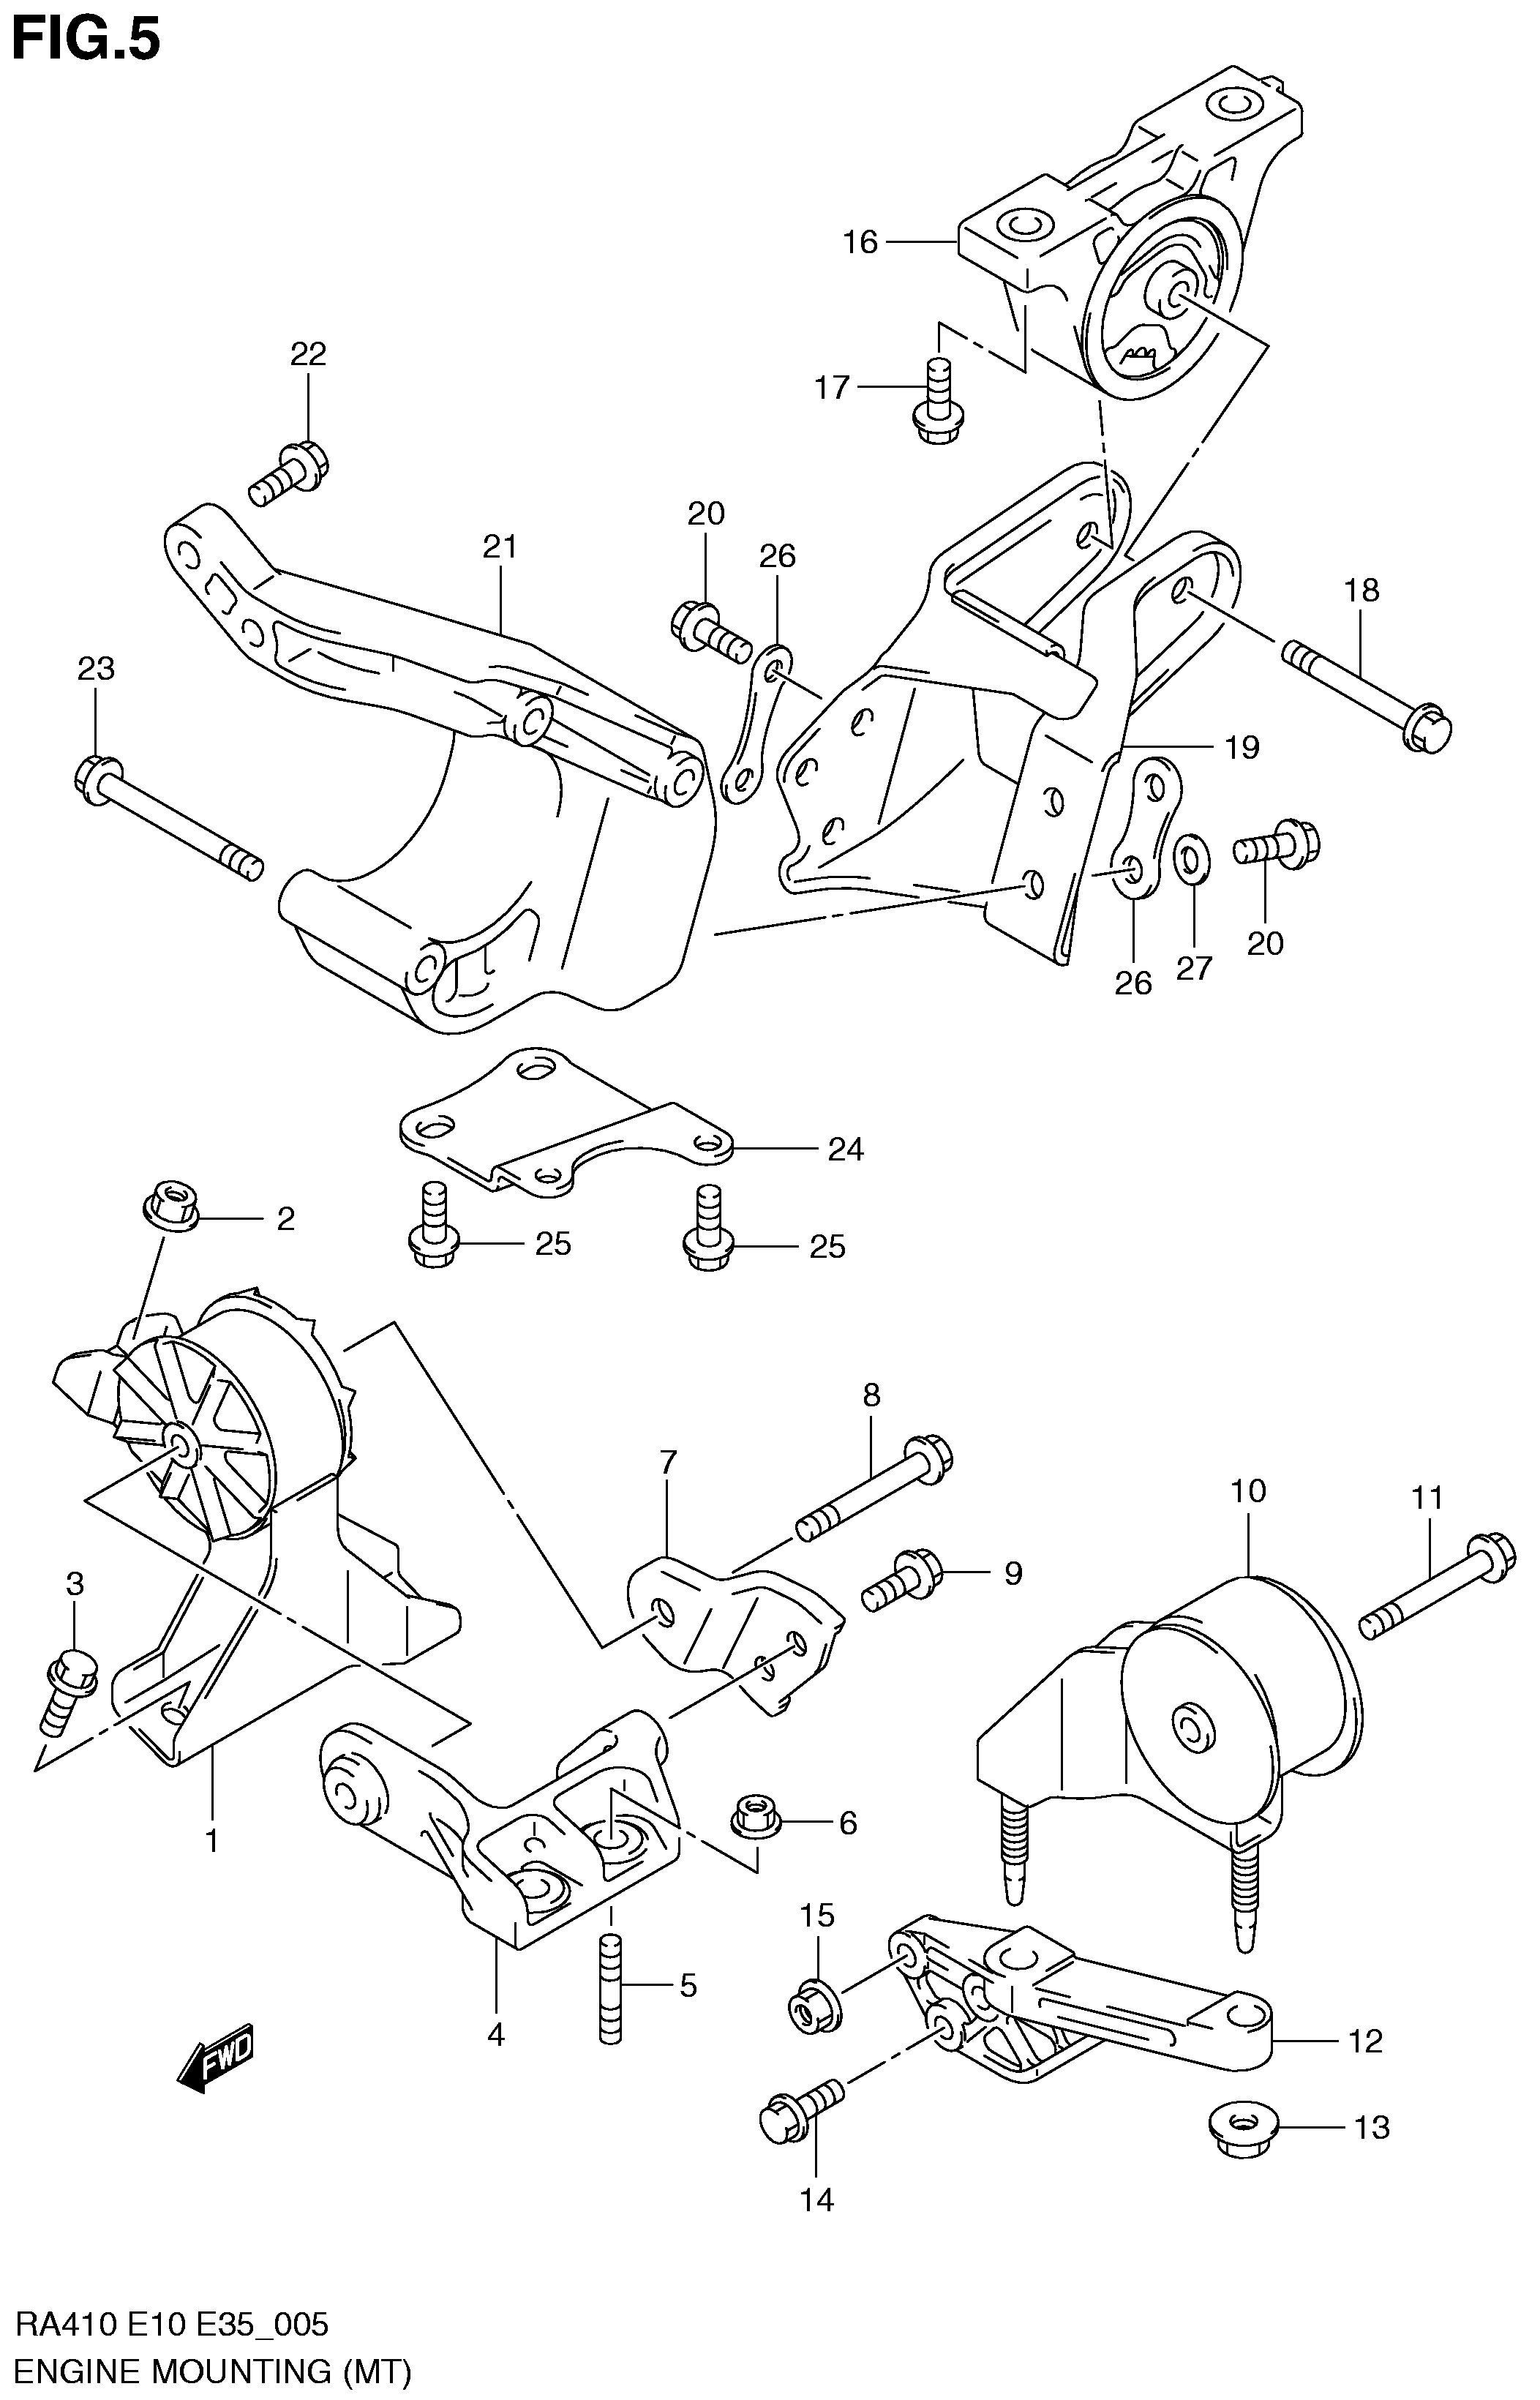 ENGINE MOUNTING (MT)